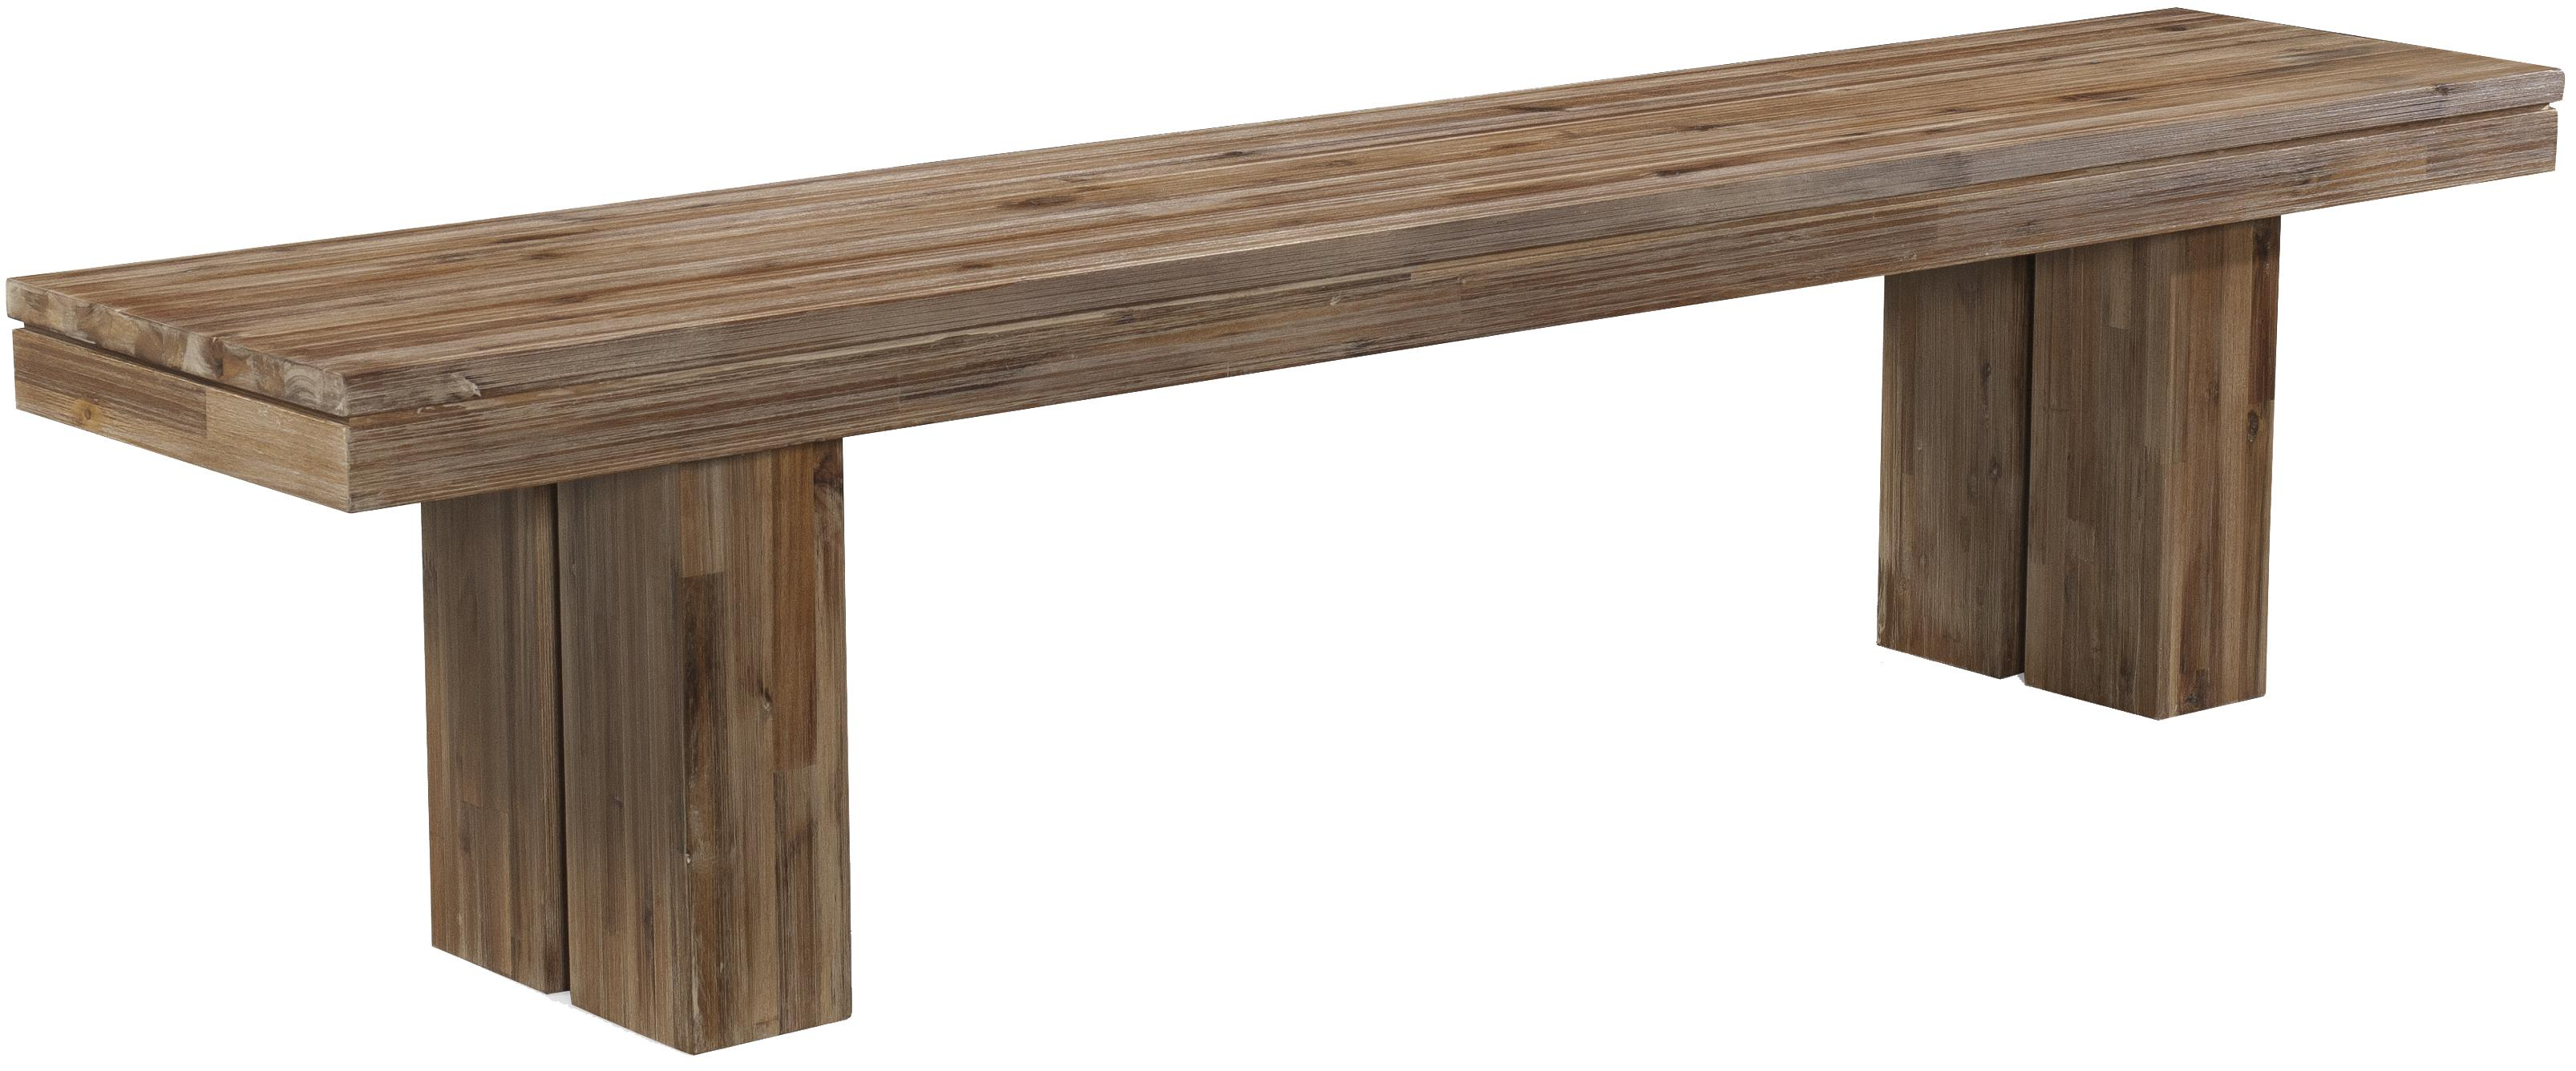 Acacia Wood Modern Rustic Dining Bench with Rectangular Leg Base